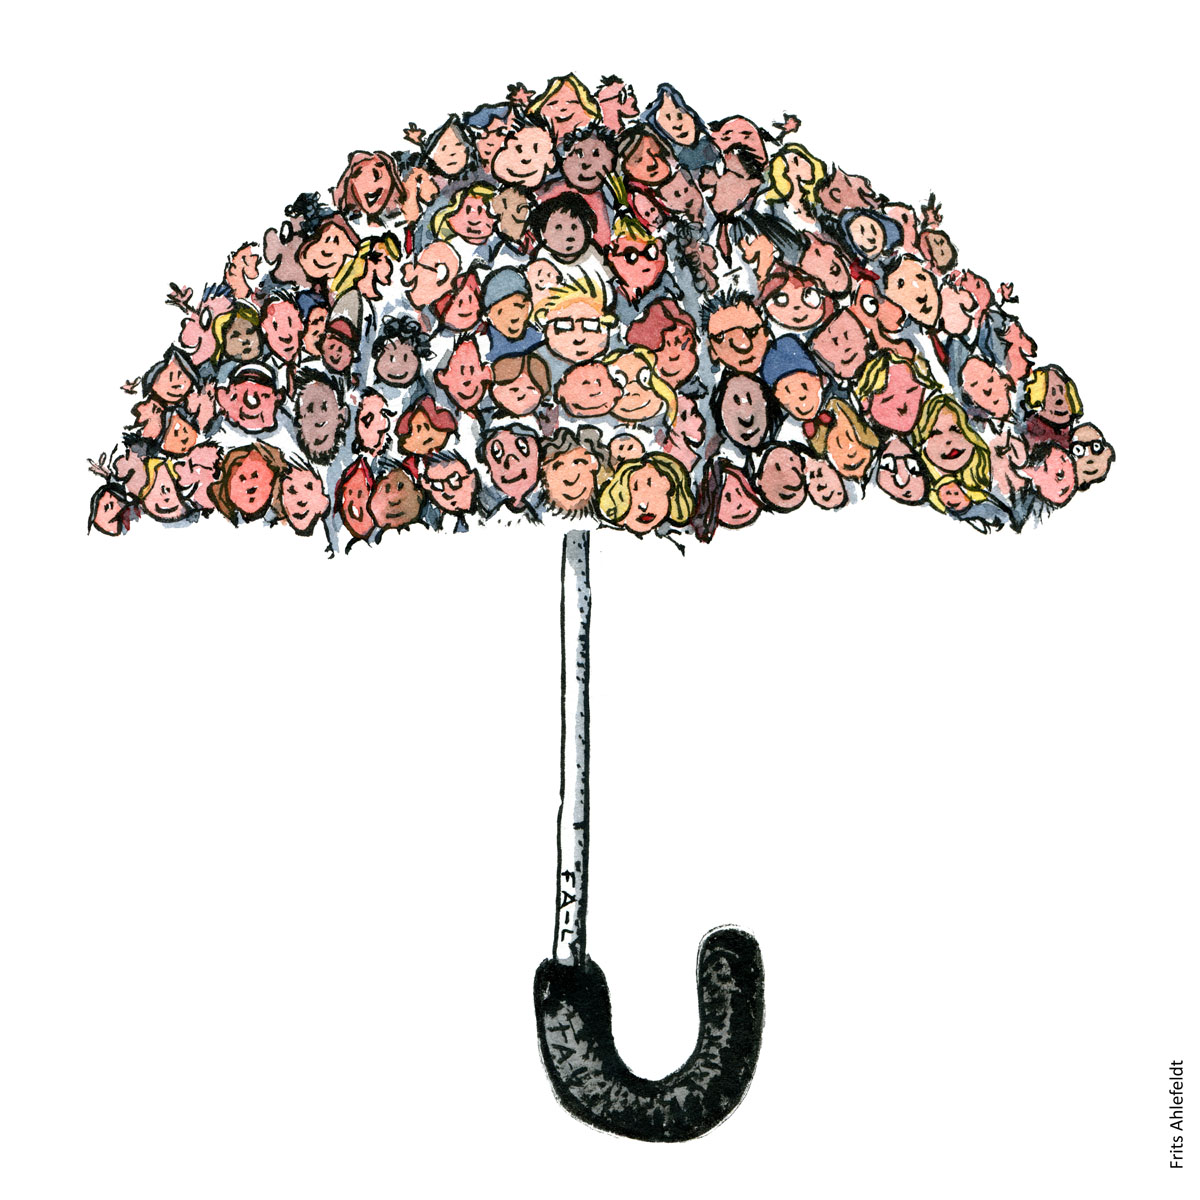 Drawing of an umbrella made up of faces of people, Illustration handmade by Frits Ahlefeldt